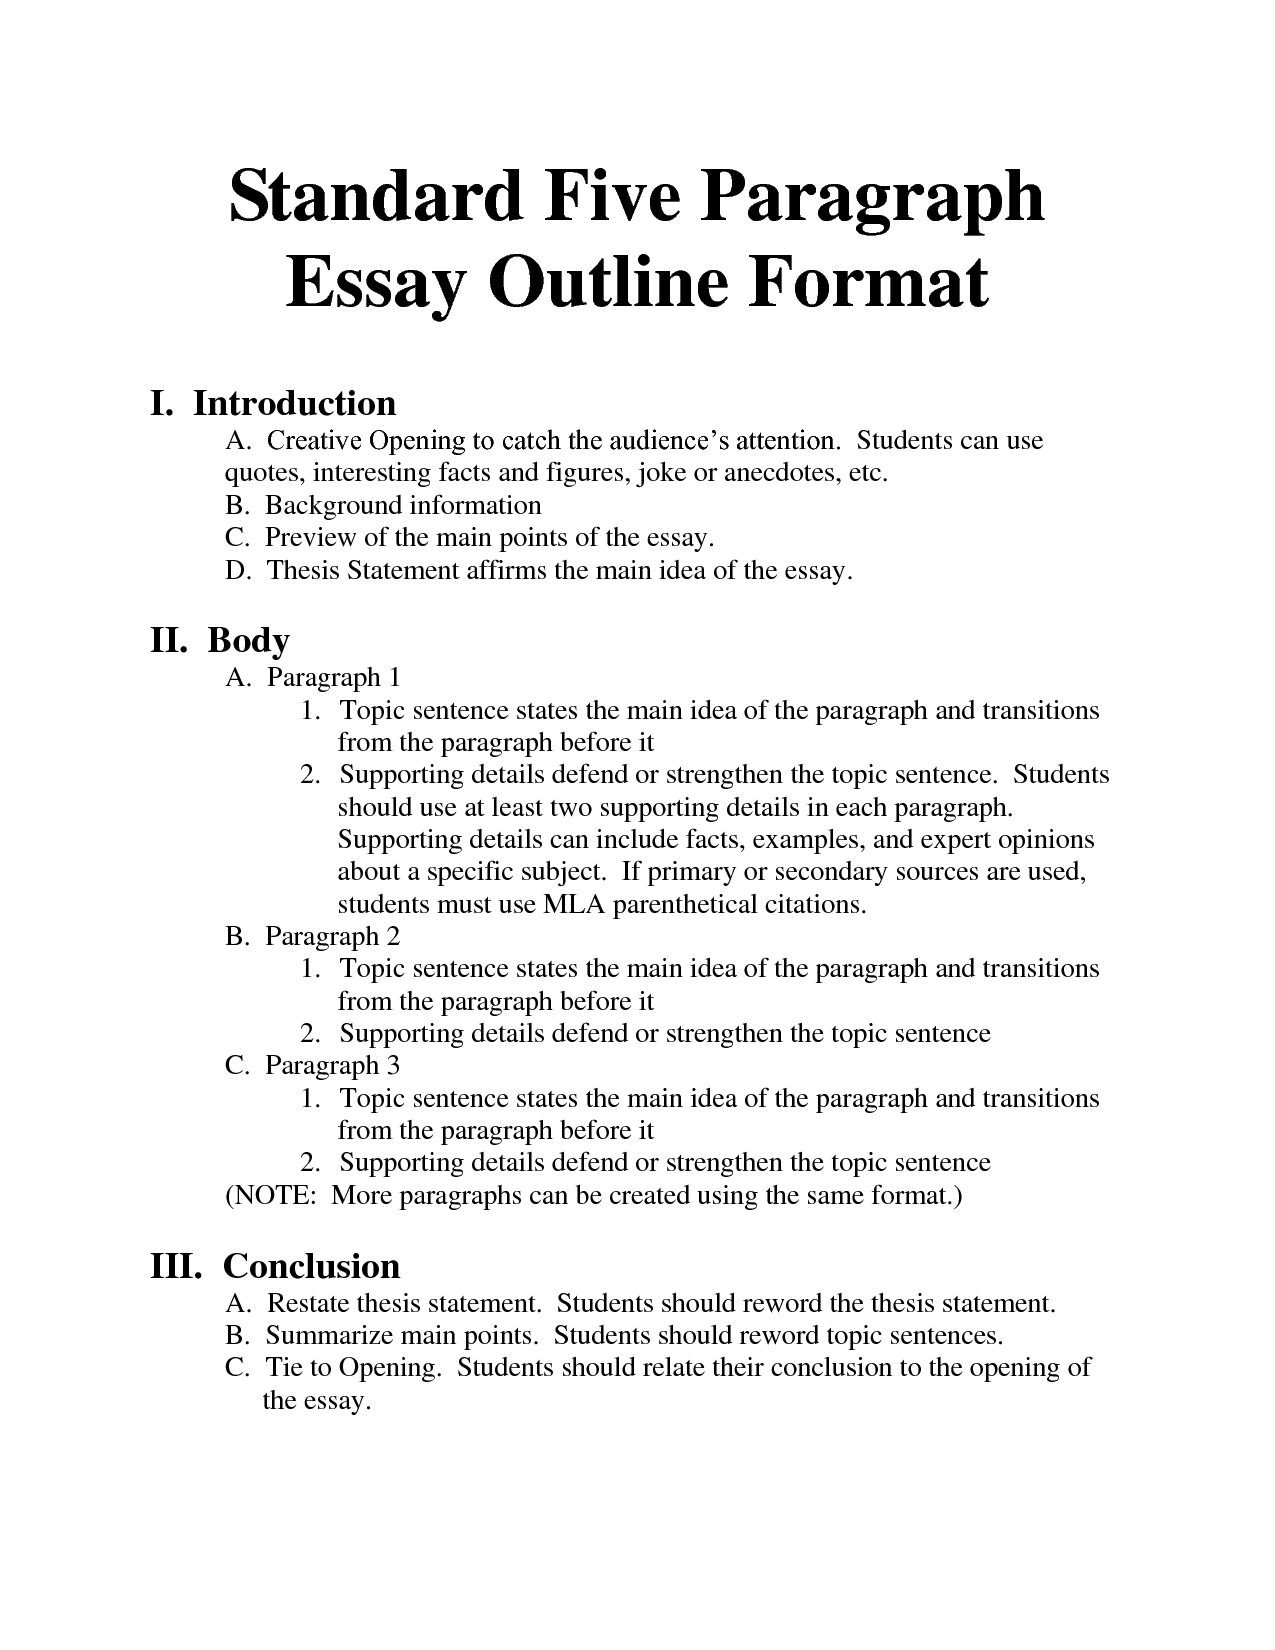 025 Essay Empire Research Unforgettable Paper Reviews Full